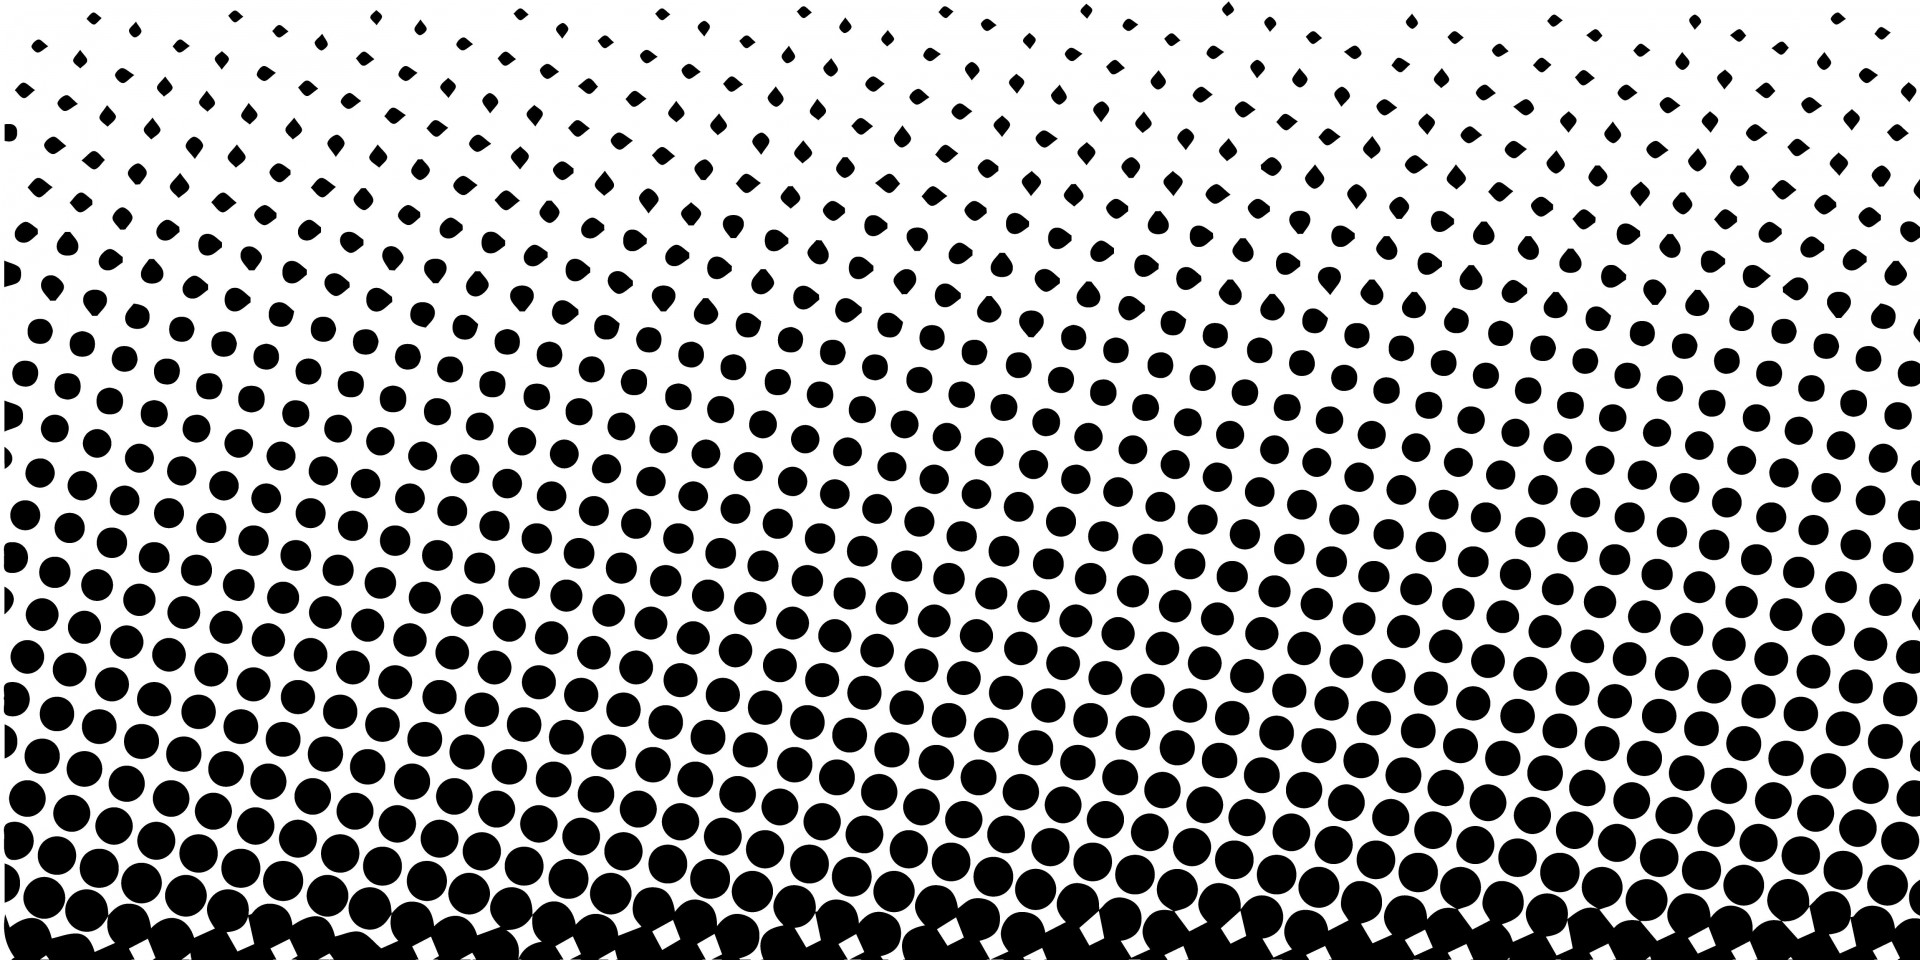 12 Free Vector Dot Patterns Images Free Vector Halftone